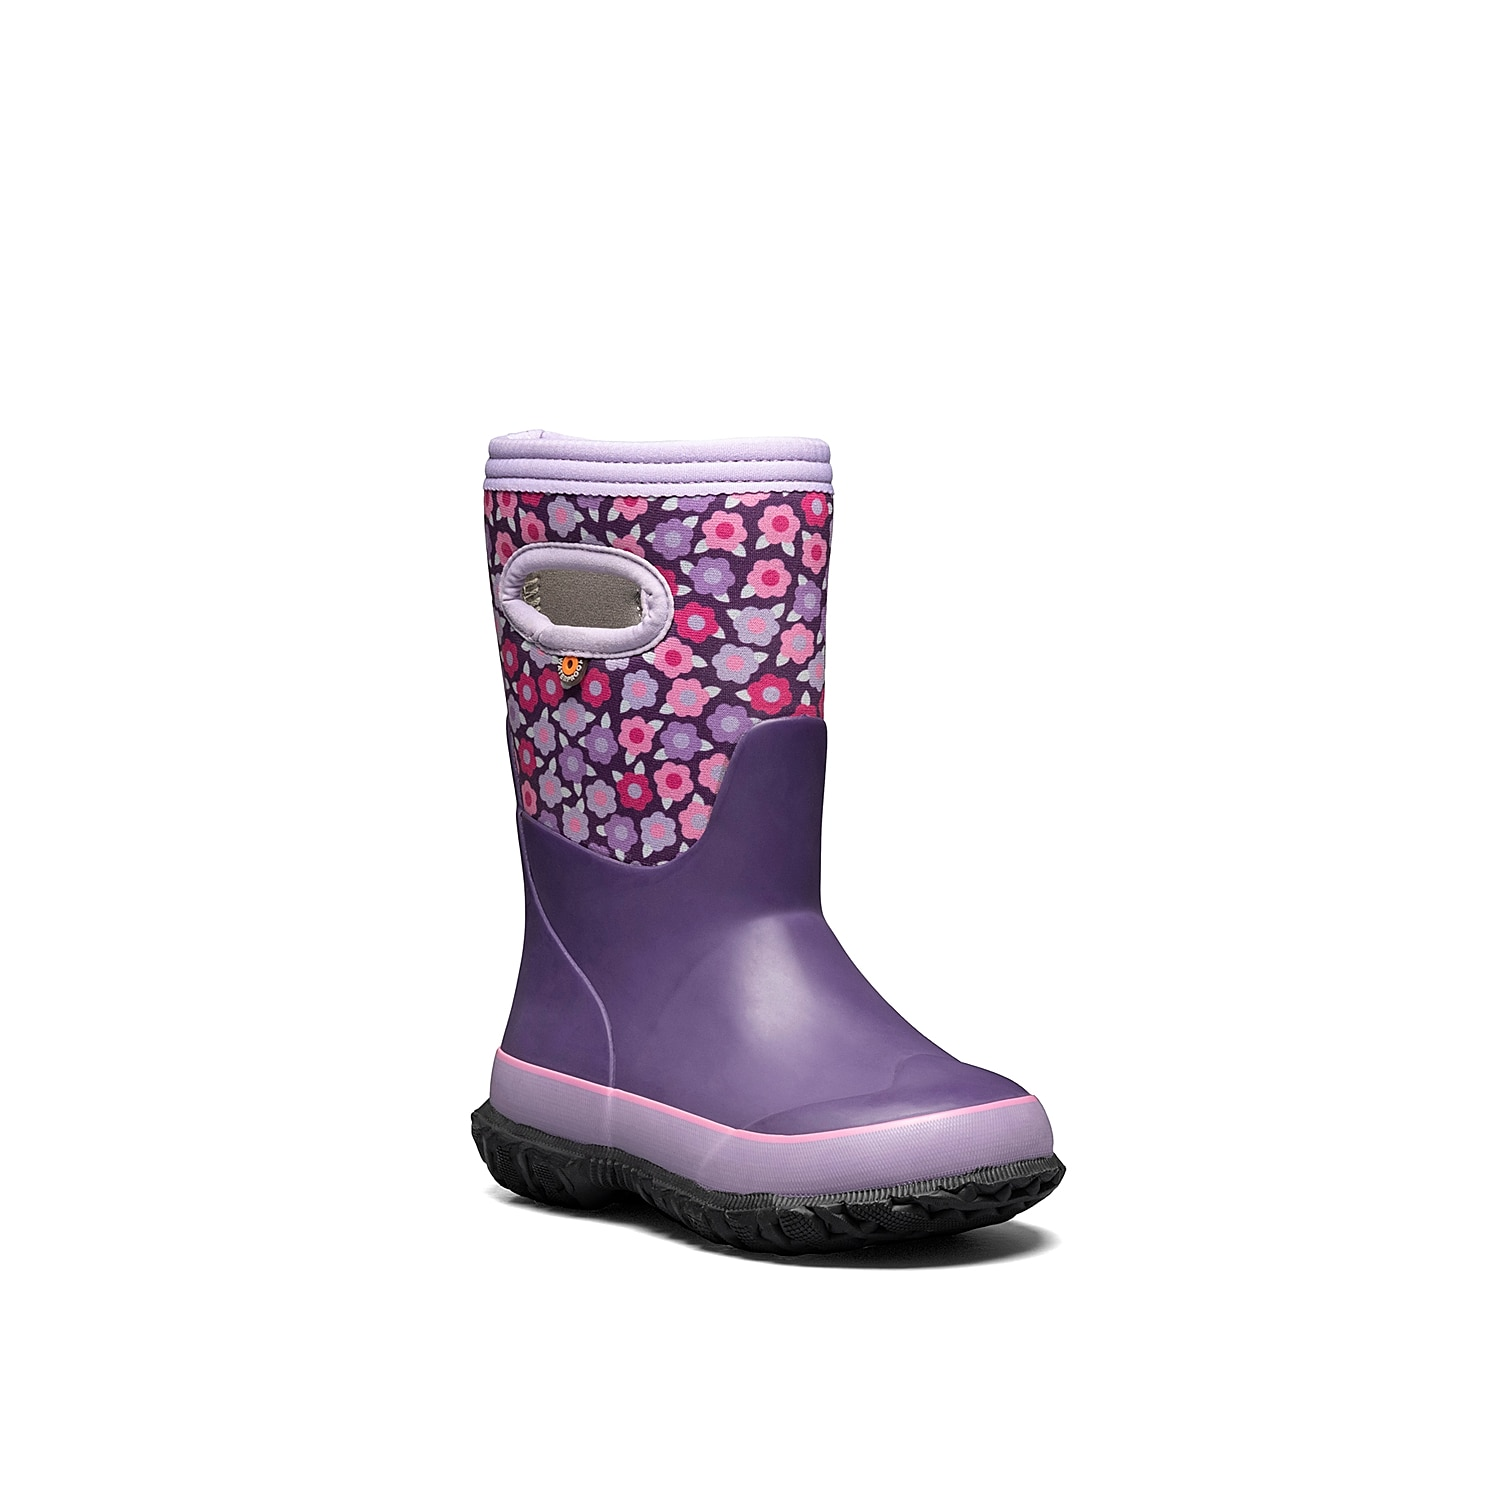 She\\\'ll love to add some color to a gloomy day with the Grasp rain boot from Bogs. This waterproof boot showcases floral-printed shaft panel for an eye-catching look and convenient pull handles at the top.Not sure which size to order? Clickhereto check out our Kids' Measuring Guide! For more helpful tips and sizing FAQs, clickhere.